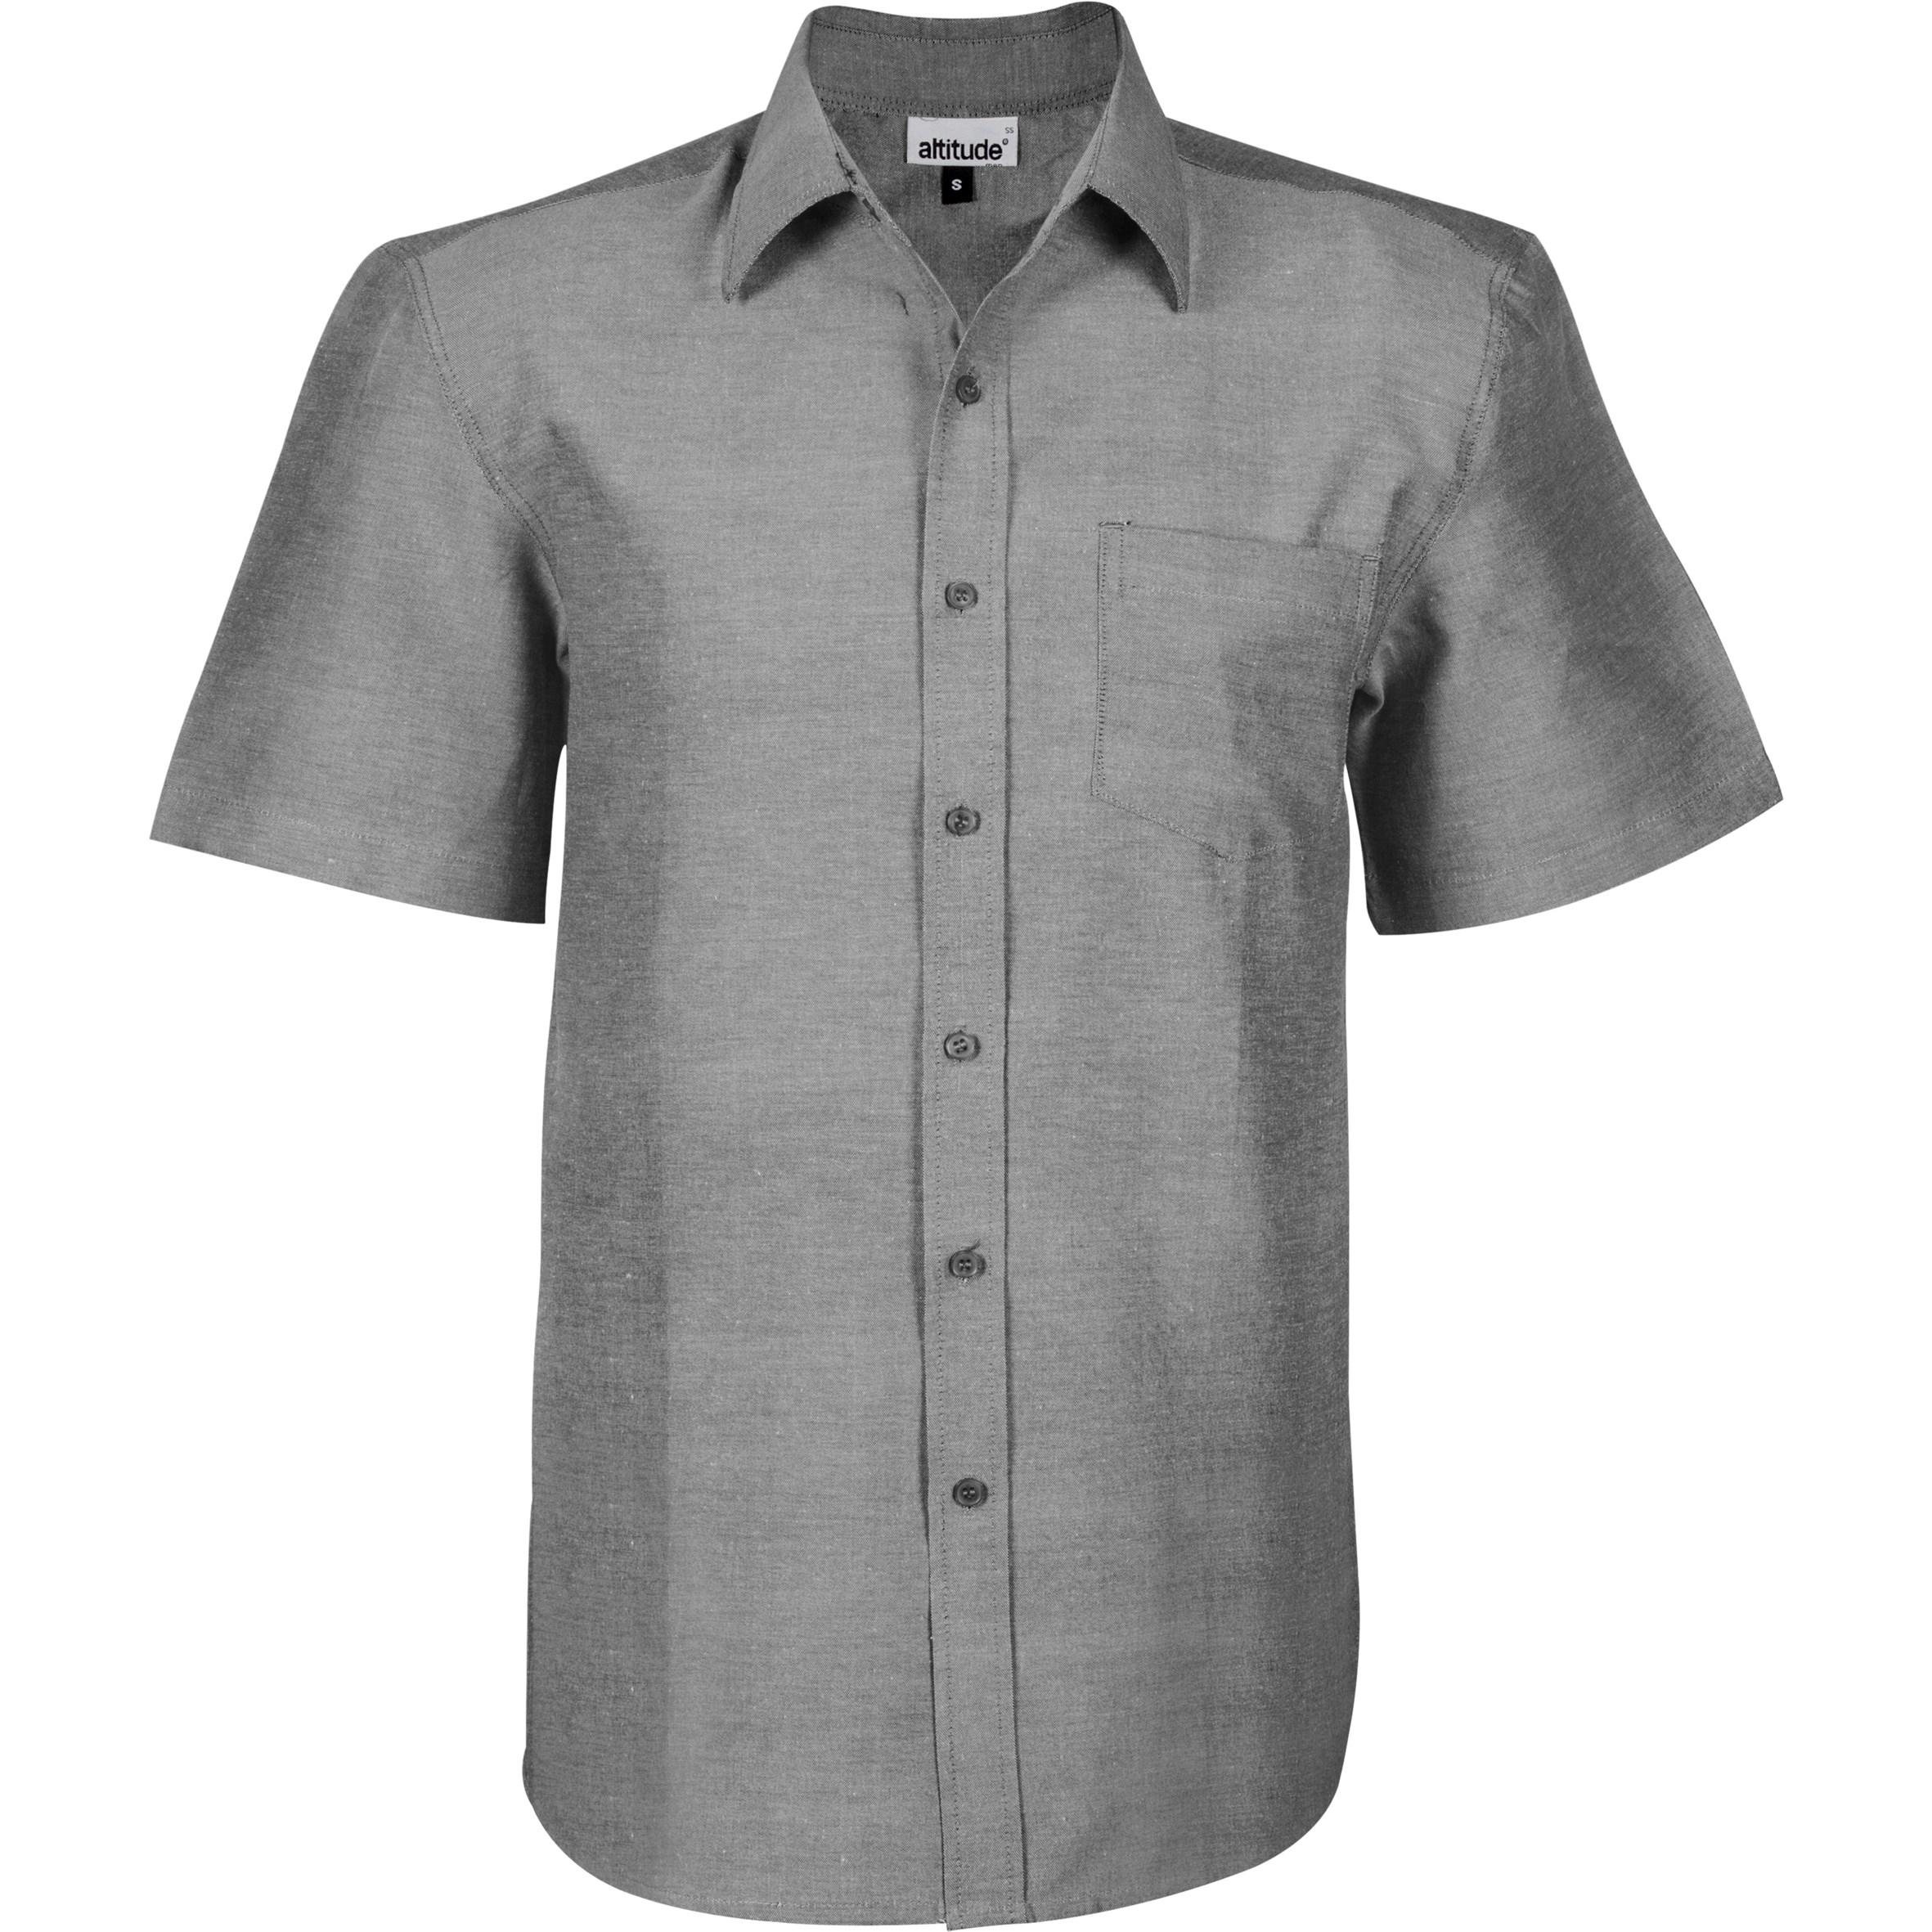 Mens Short Sleeve Oxford Shirt - Charcoal Only